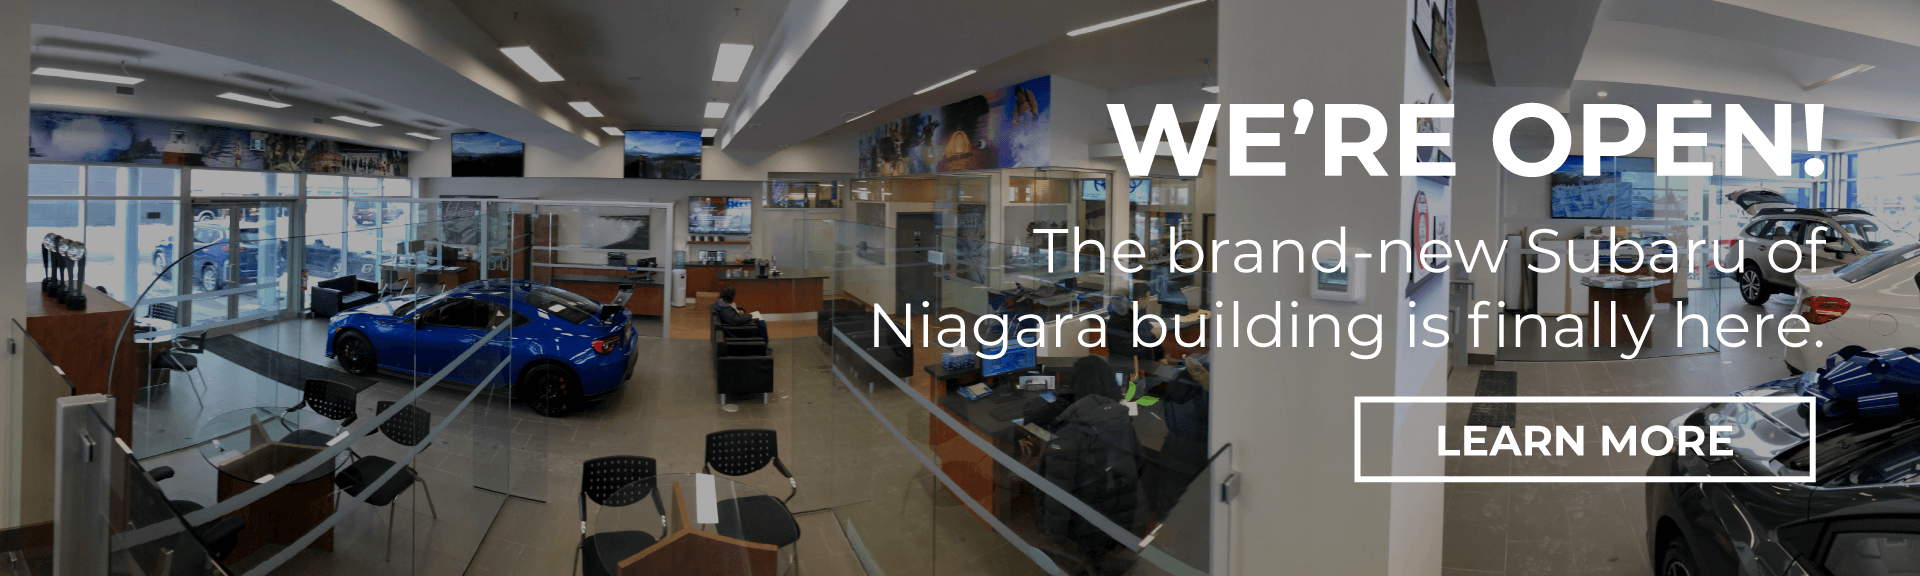 New Subaru of Niagara Building